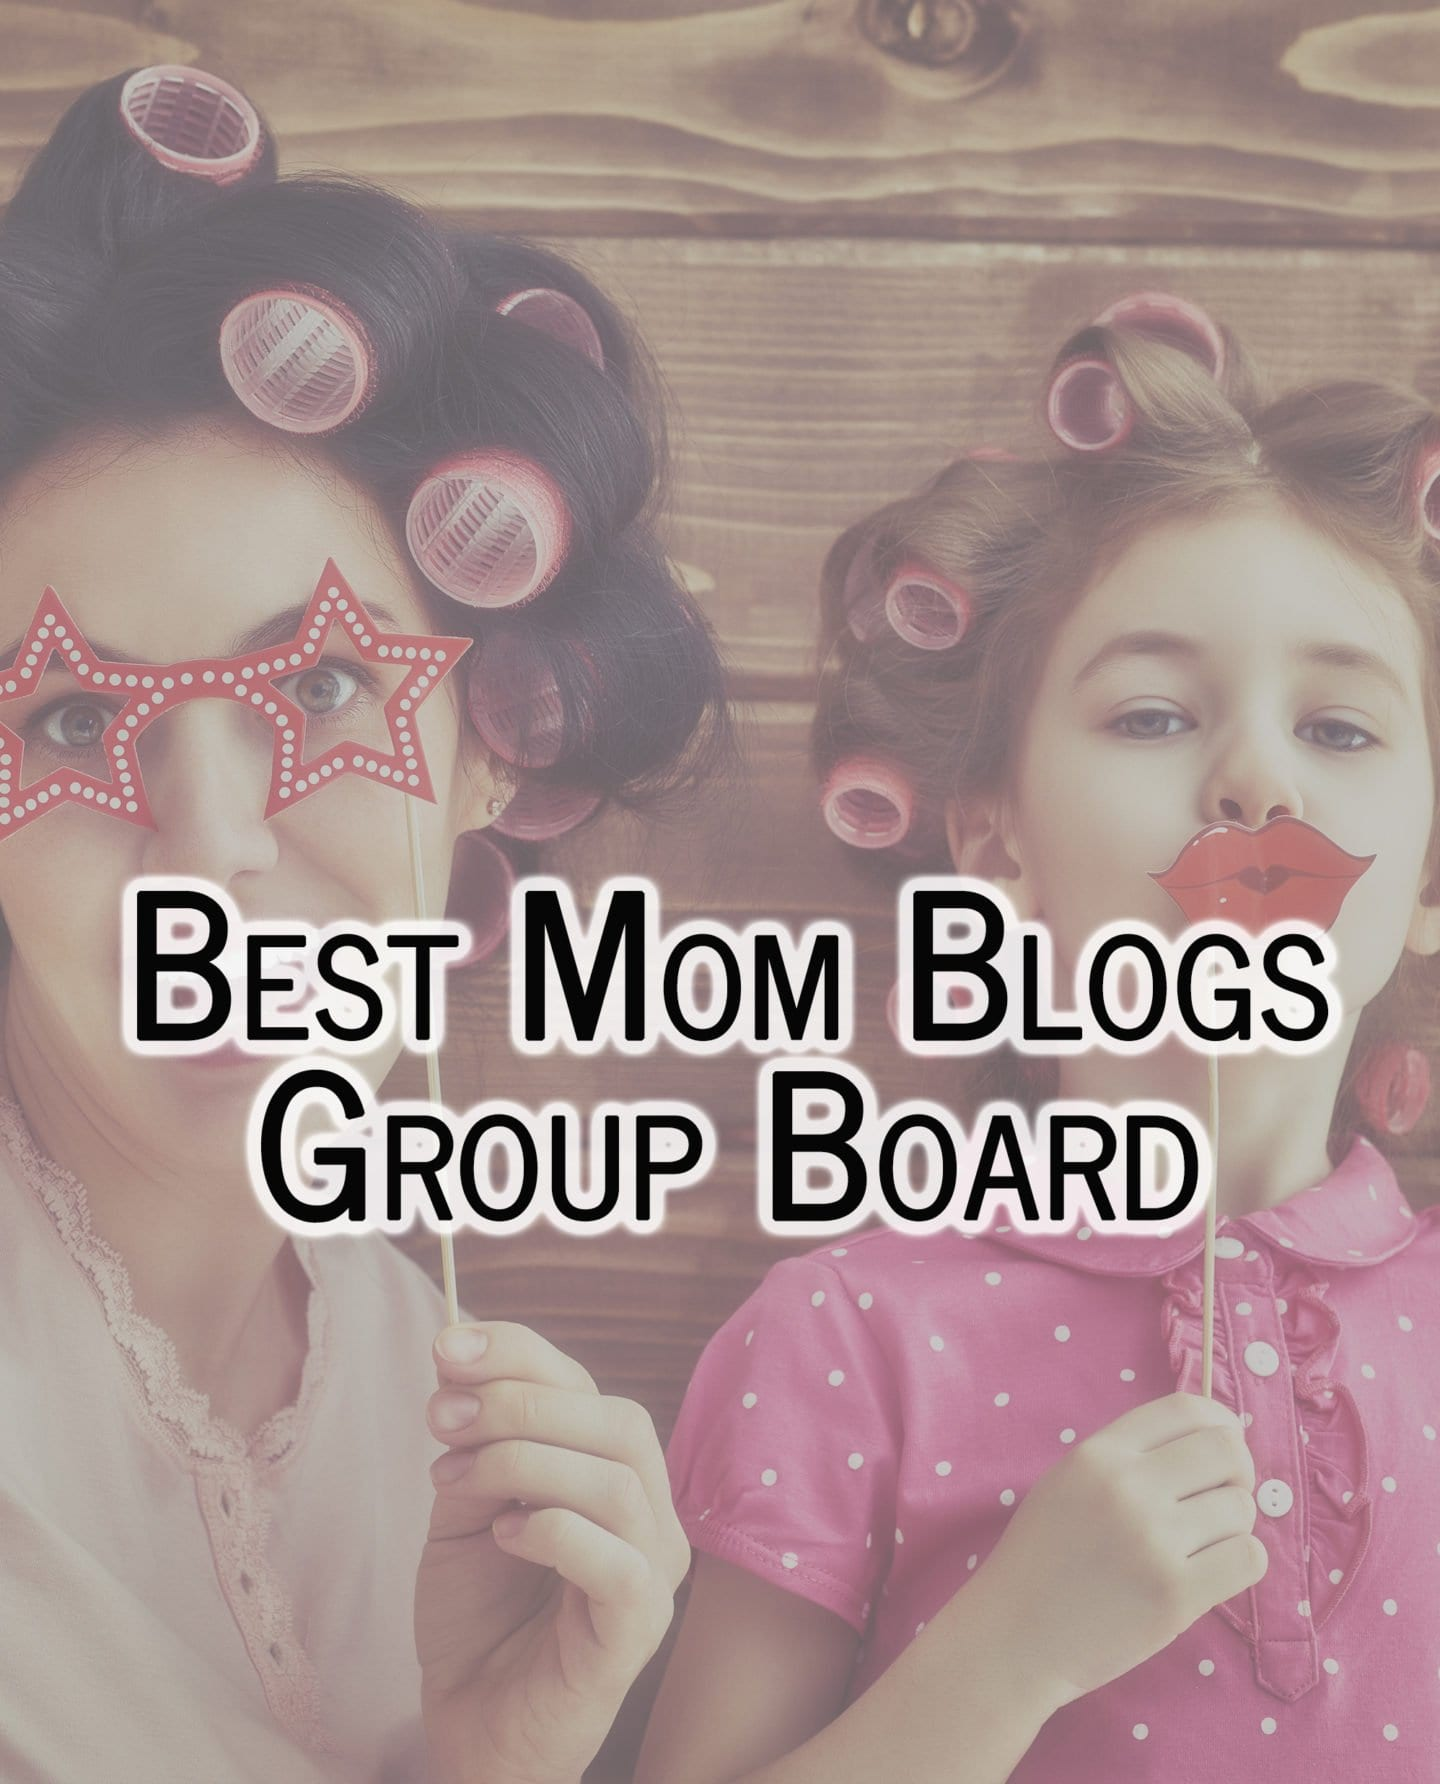 Join best mom blogs